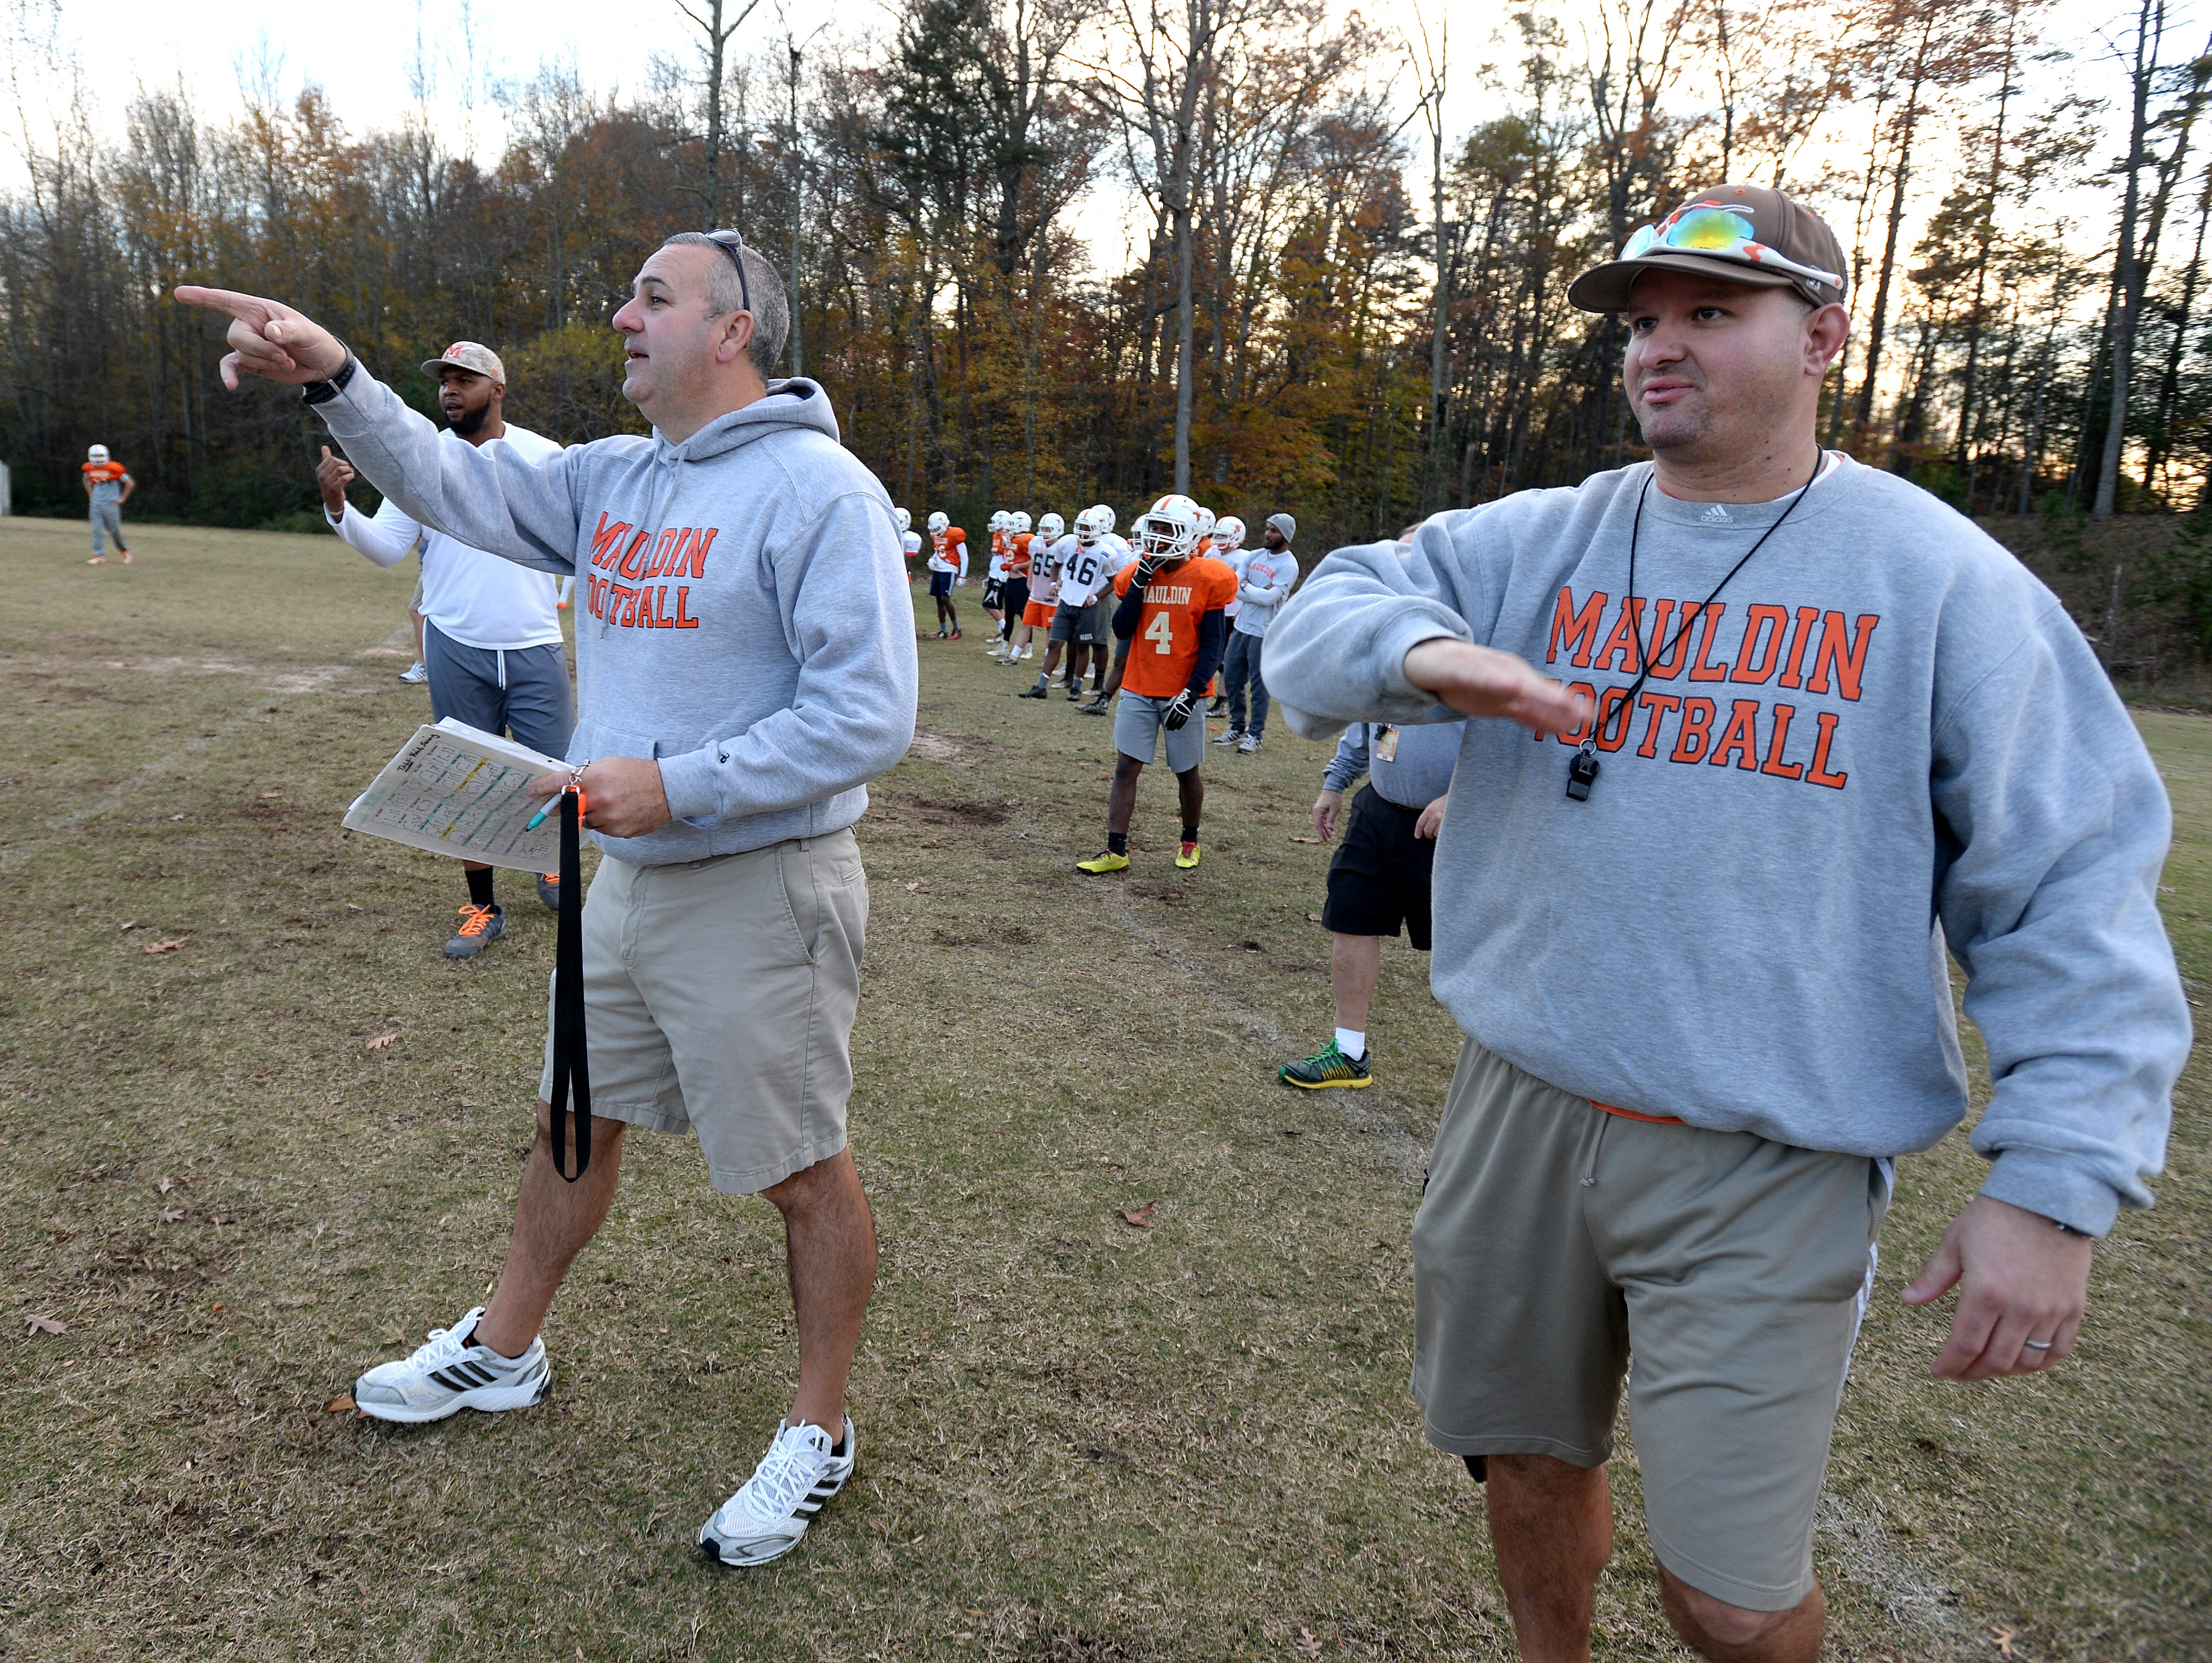 Mauldin head coach Lee Taylor, left, and assistant coach Brian Thompson call plays to the offense during the teams practice Monday, November 16, 2015. Mauldin will play Hillcrest in the 1st round of the AAAA playoffs Friday at Hillcrest.